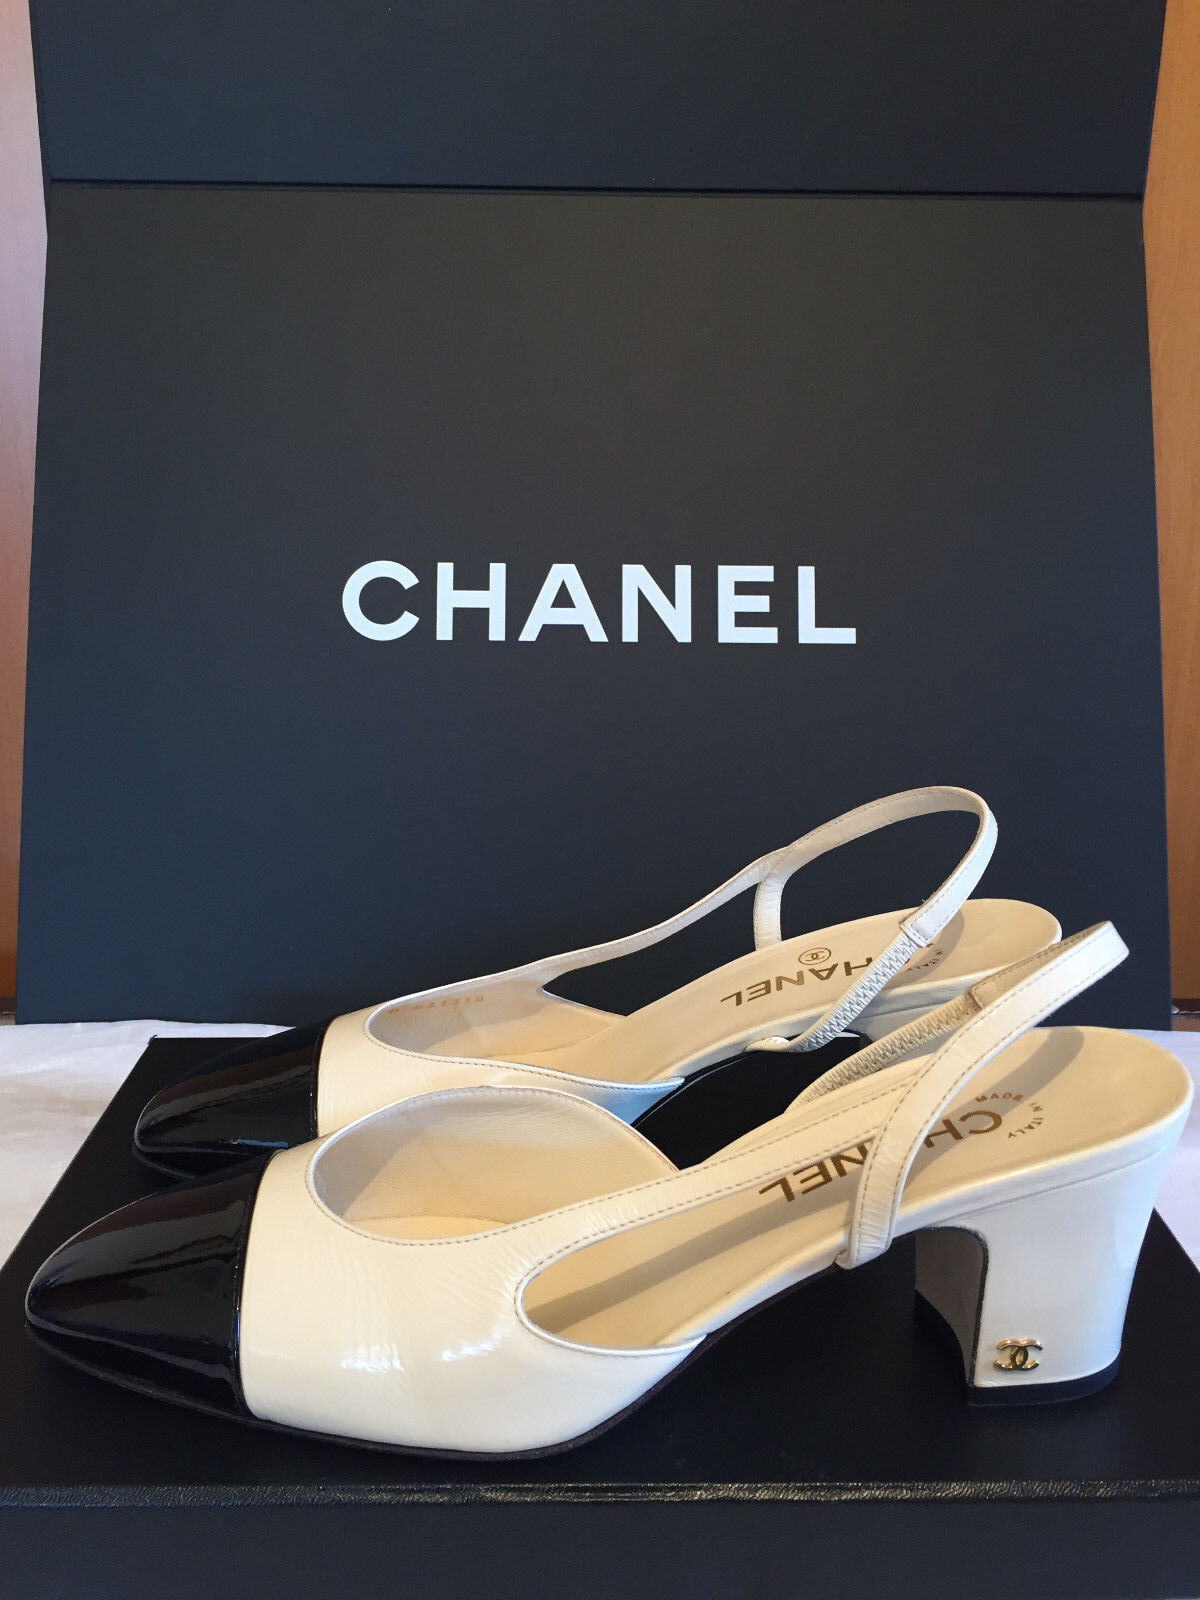 Chanel TwoTone Off White Black Patent Leather Slingback Shoes 405 US 10 12